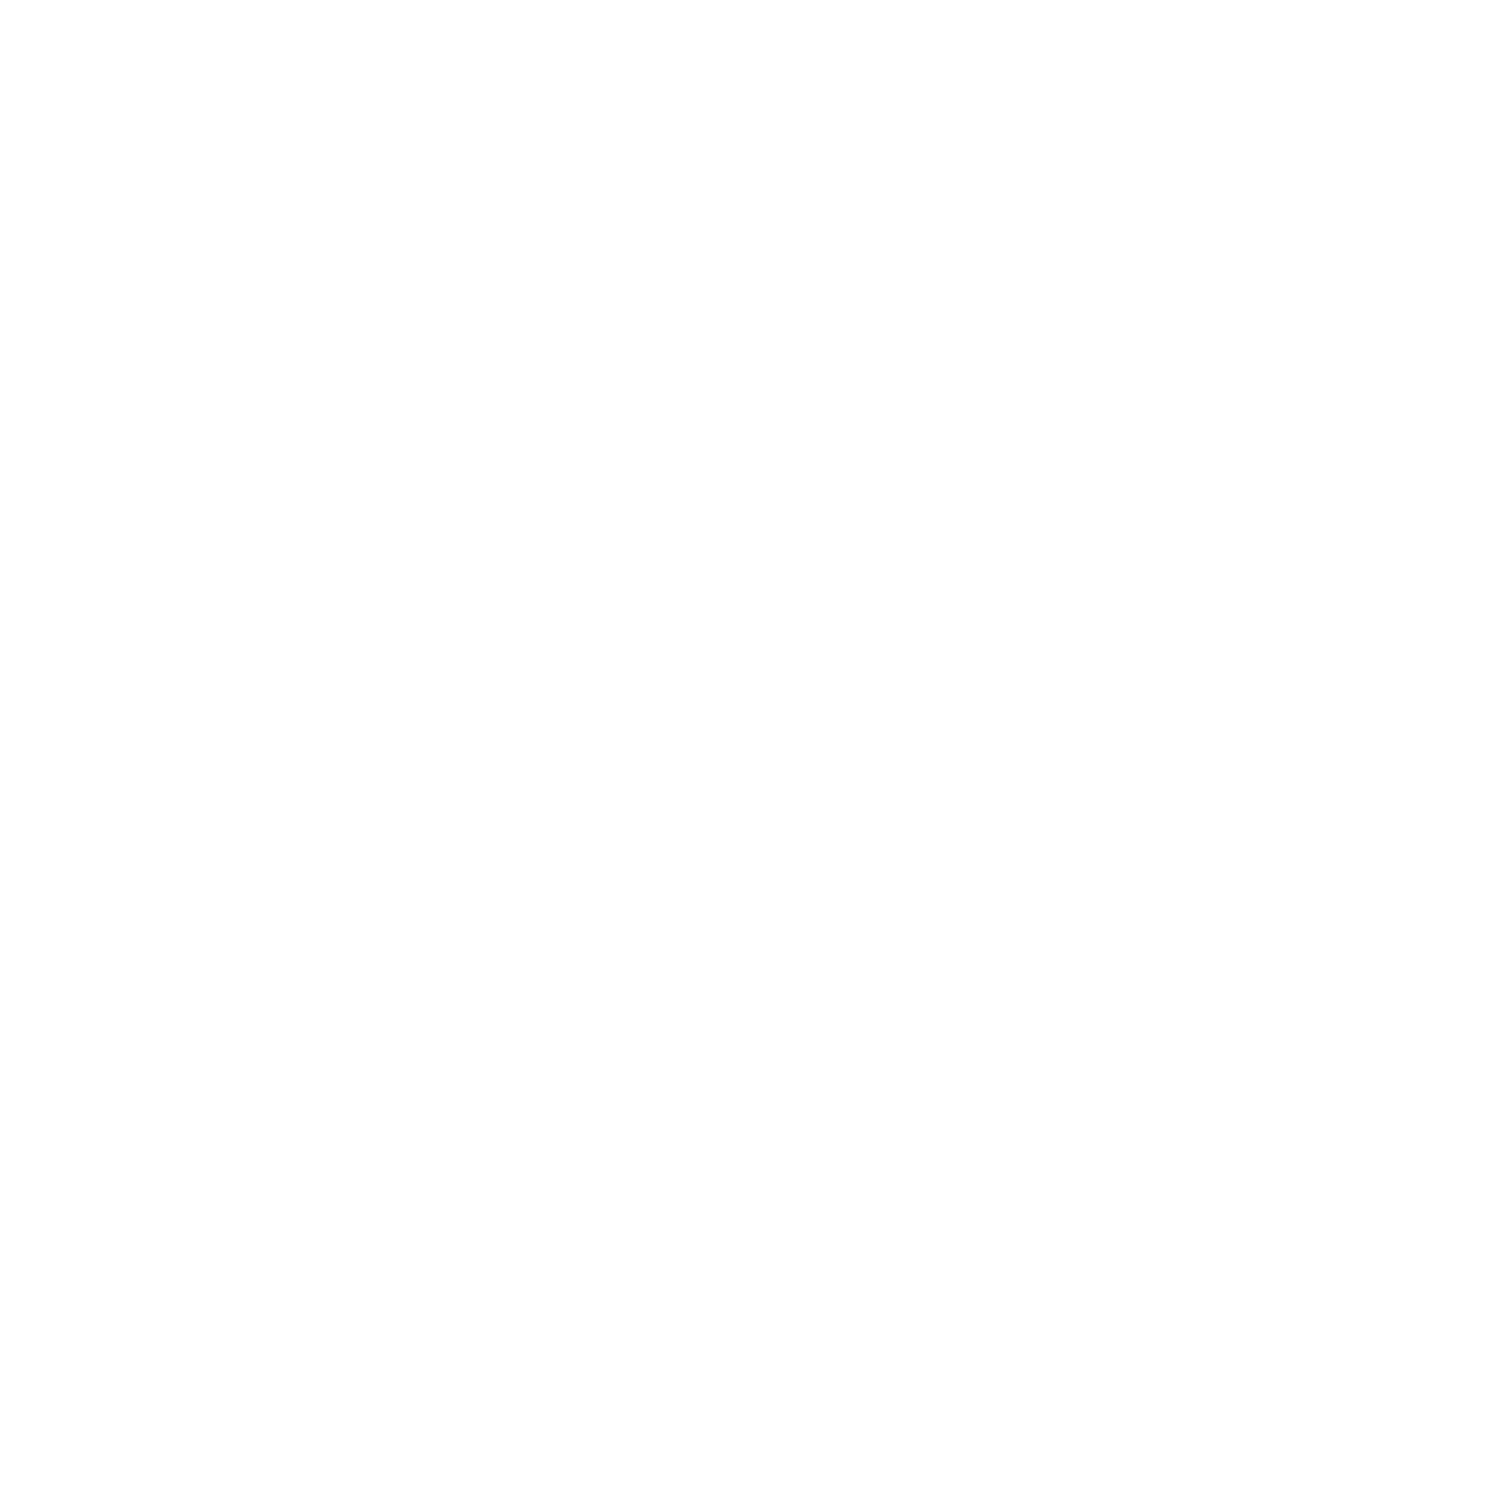 Fisheries Ecology & Conservation